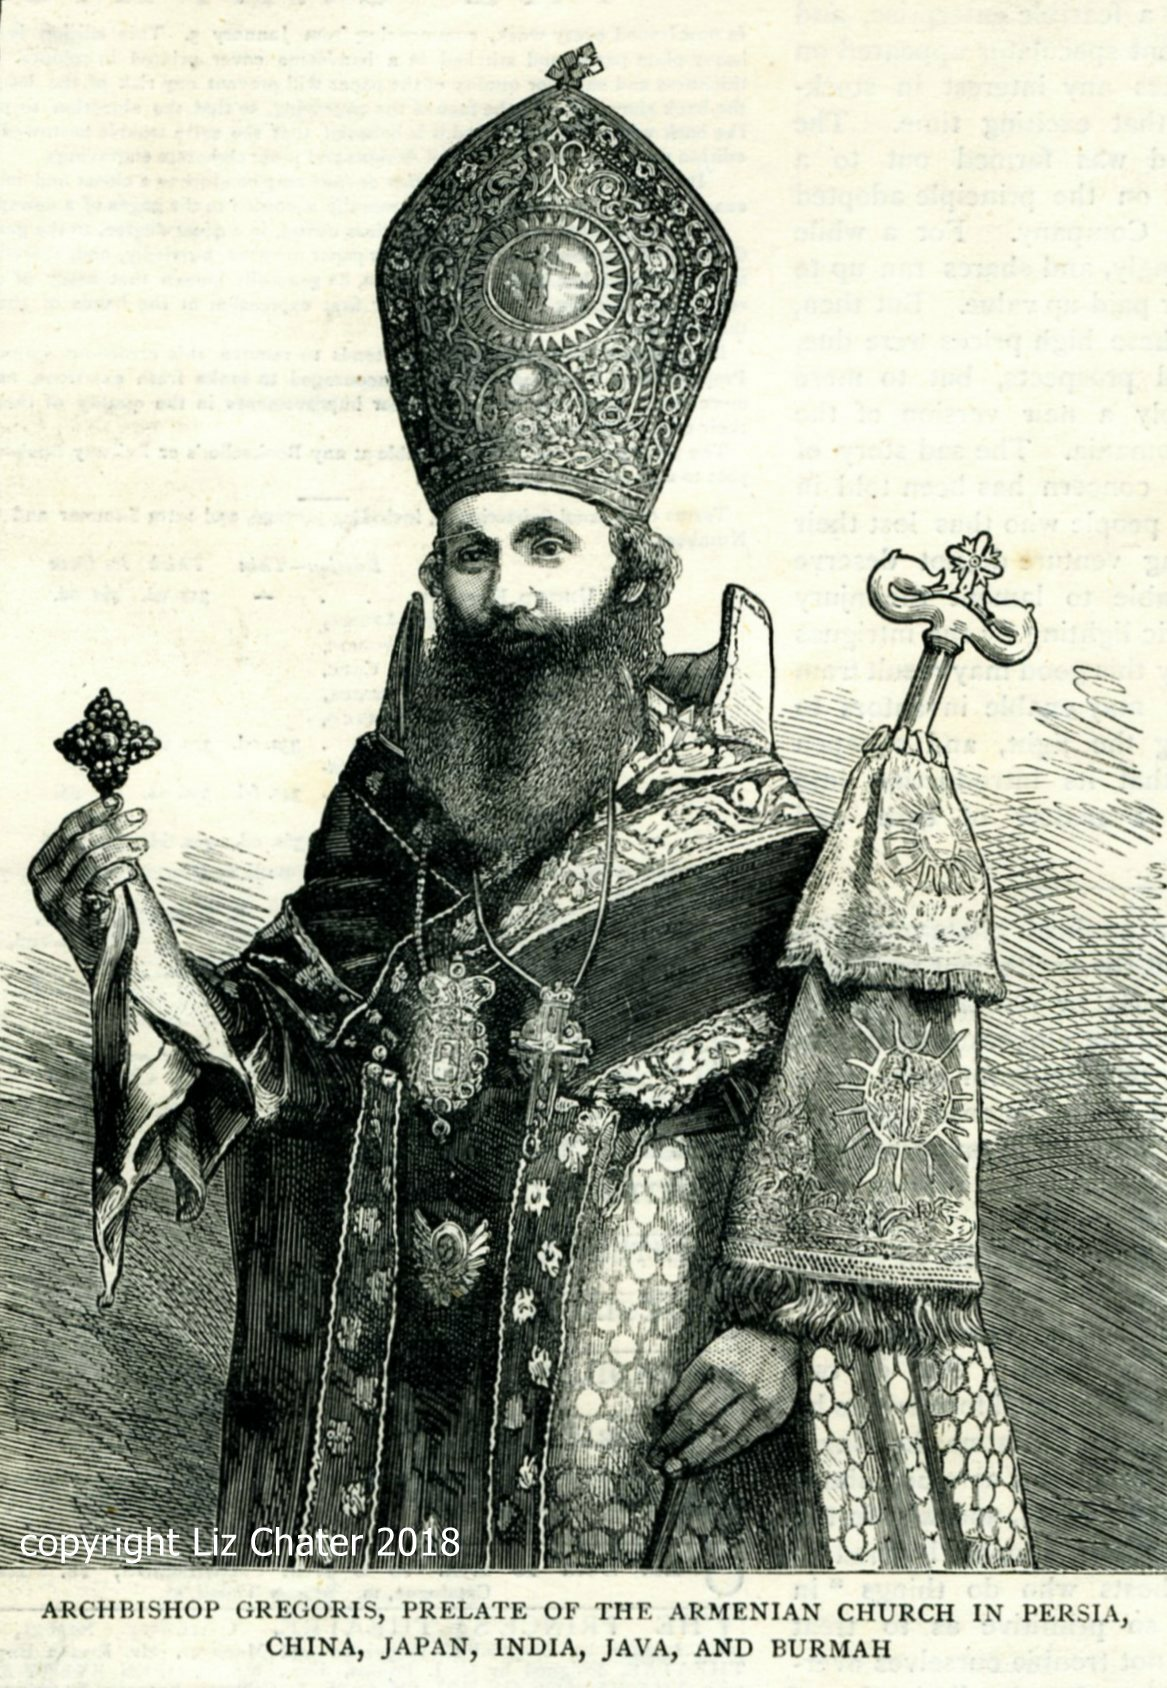 Archbishop Gregoris